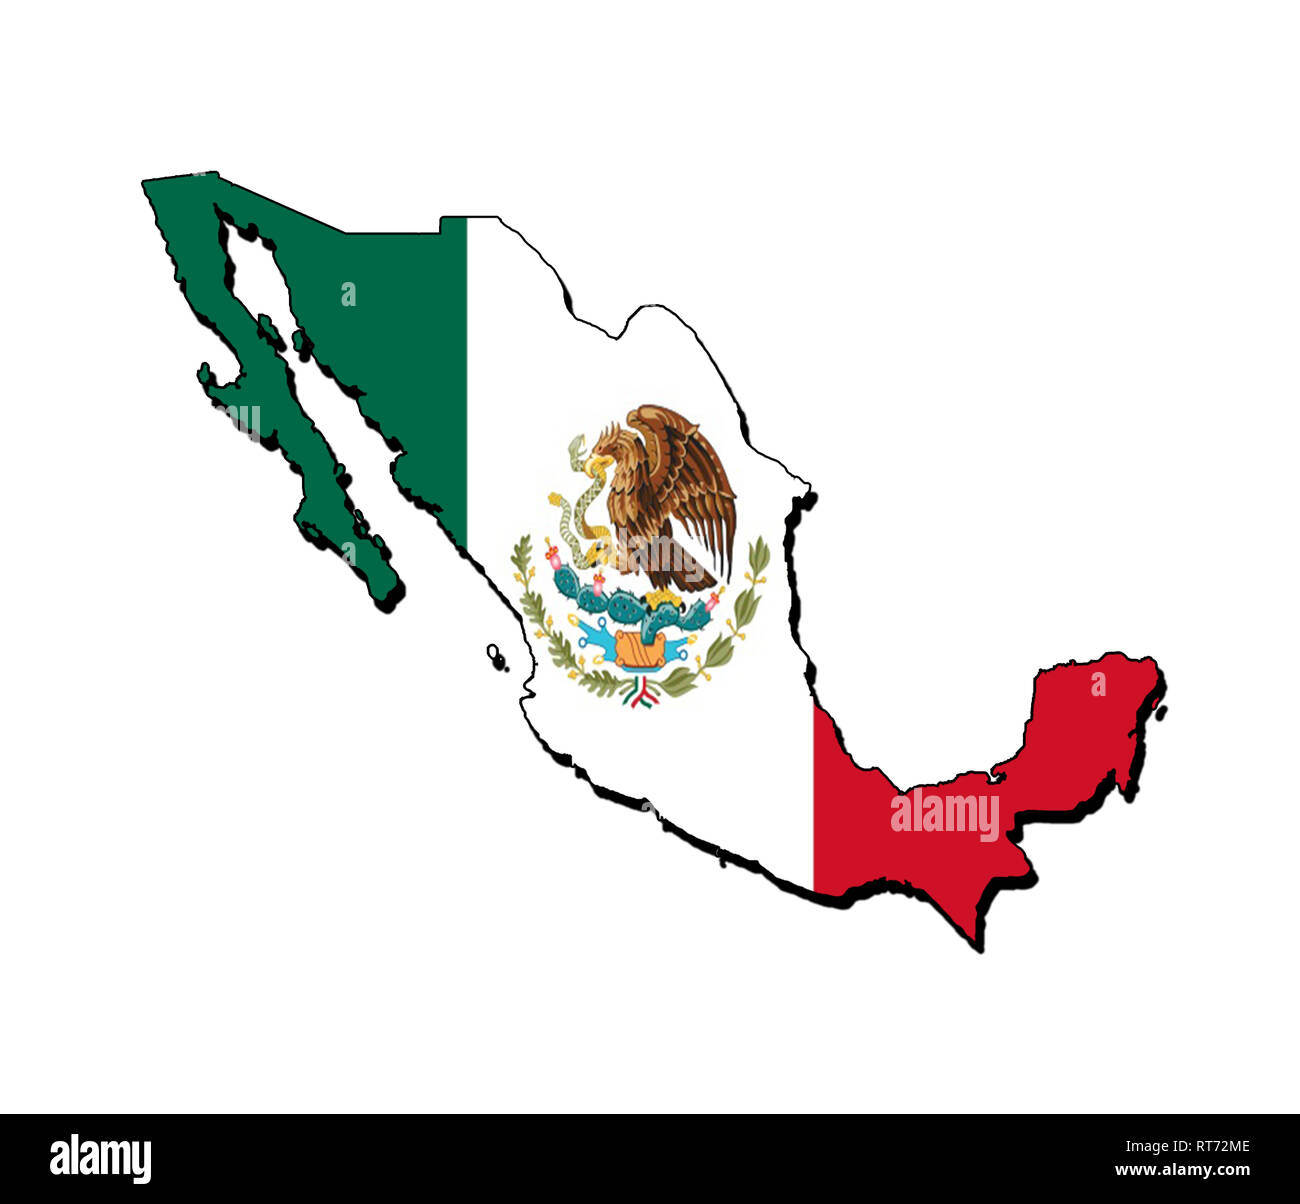 Silhouette of the map of Mexico with its flag - Stock Image